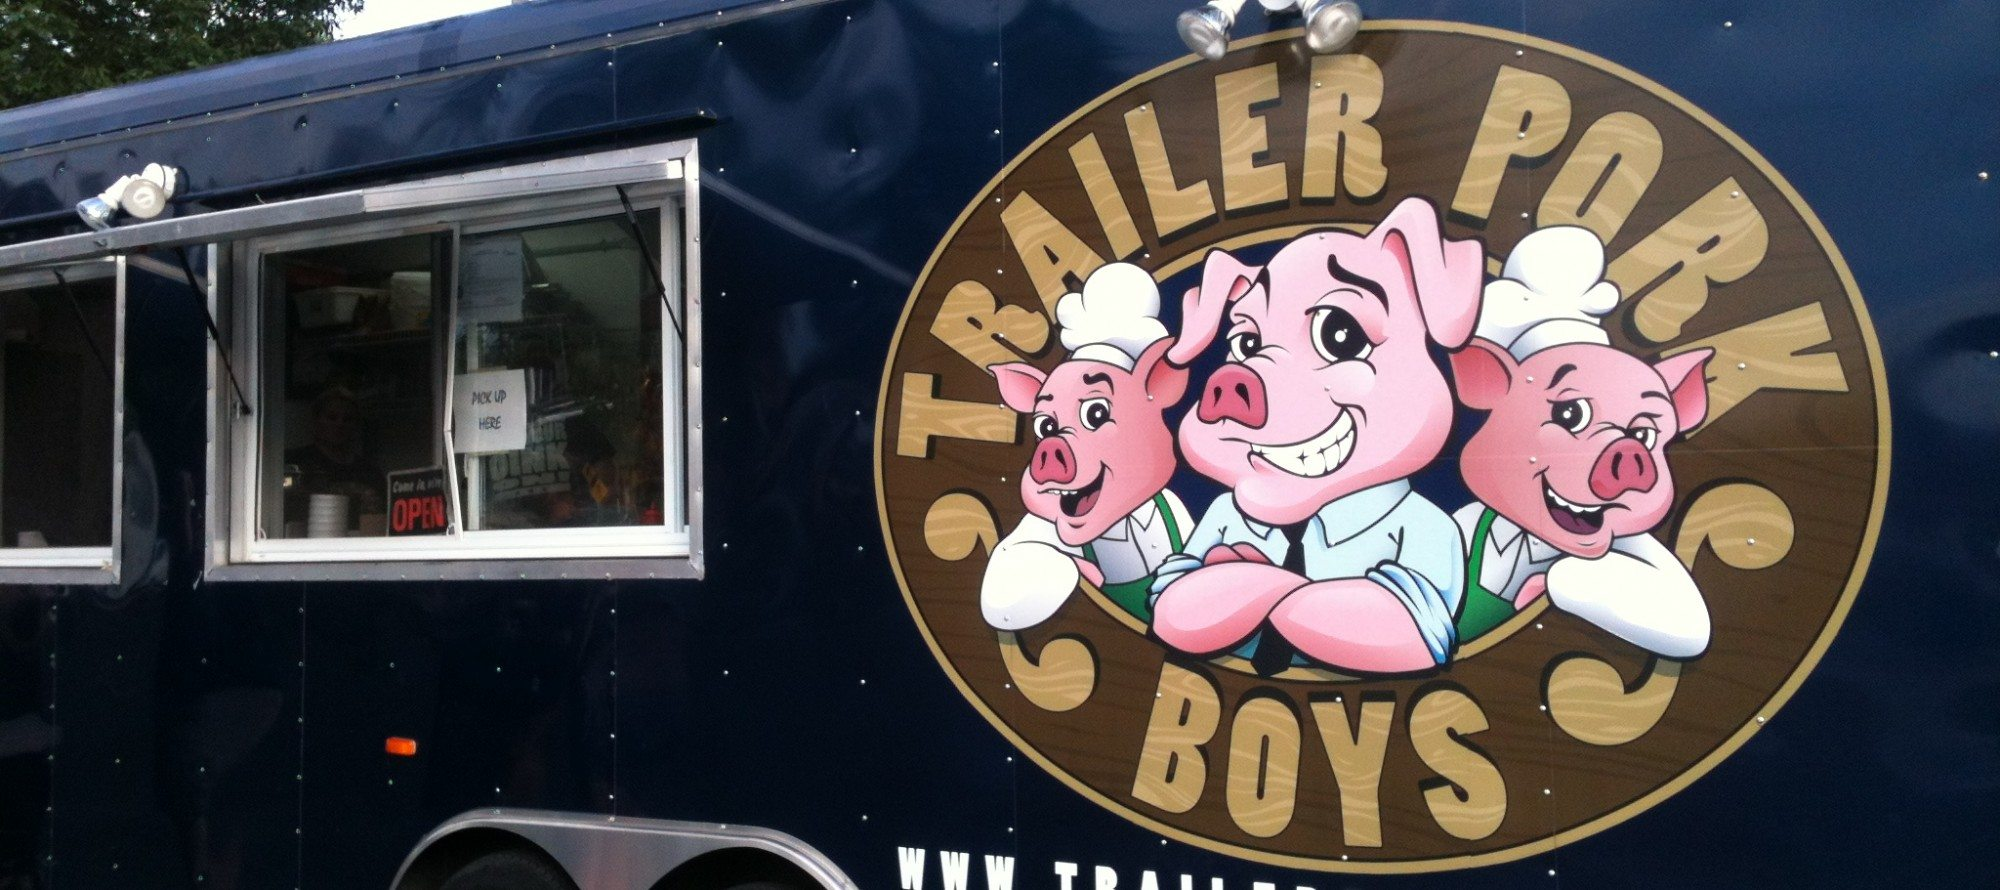 WEEKLY LUNCH PICK: Trailer Pork Boys' pulled pork — a picnic in a parking lot